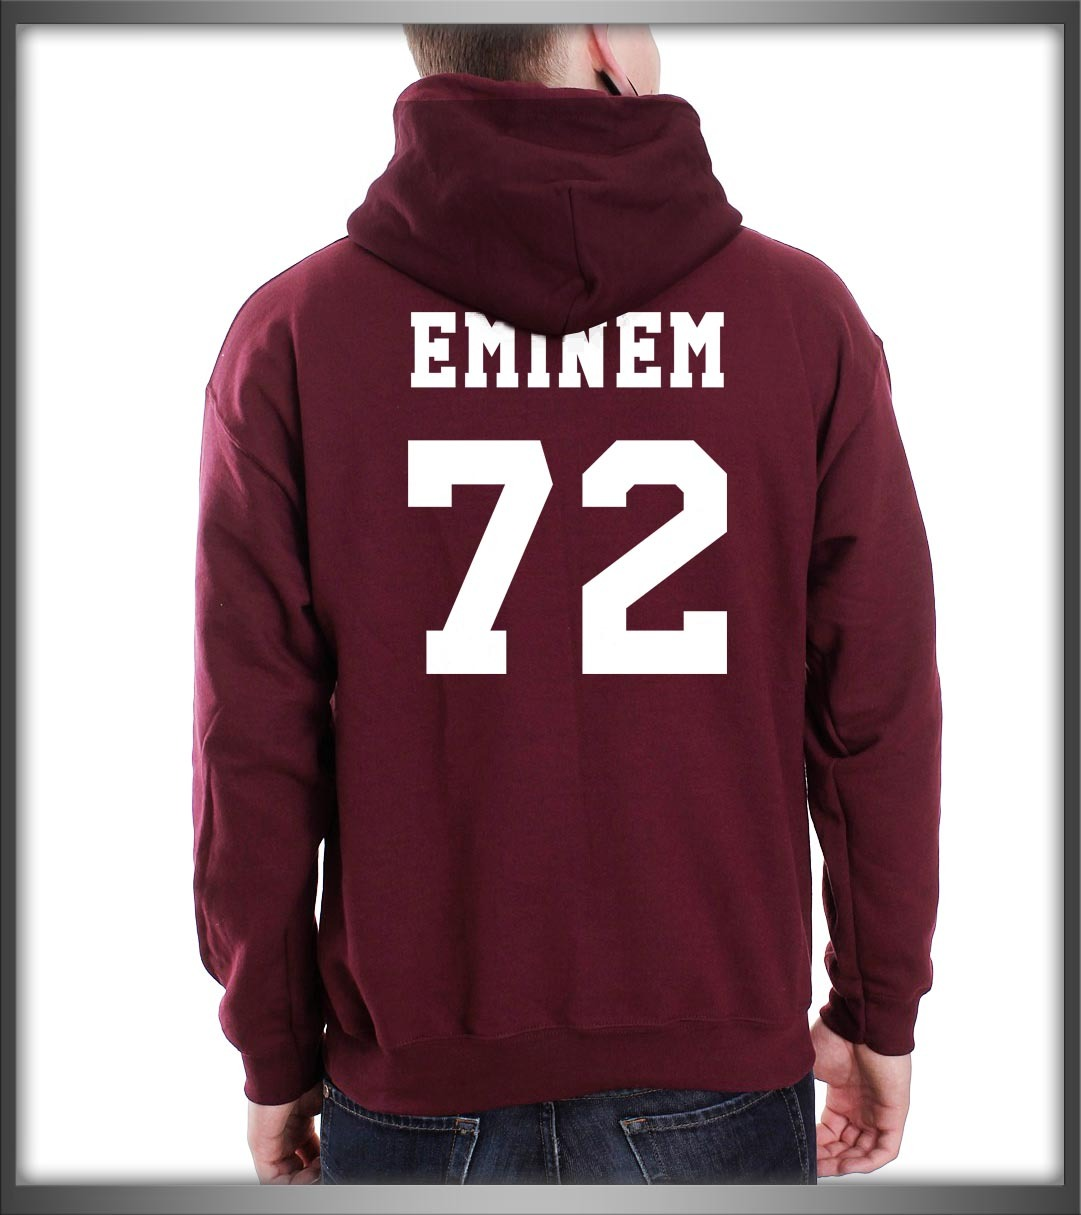 Eminem hoodies for sale